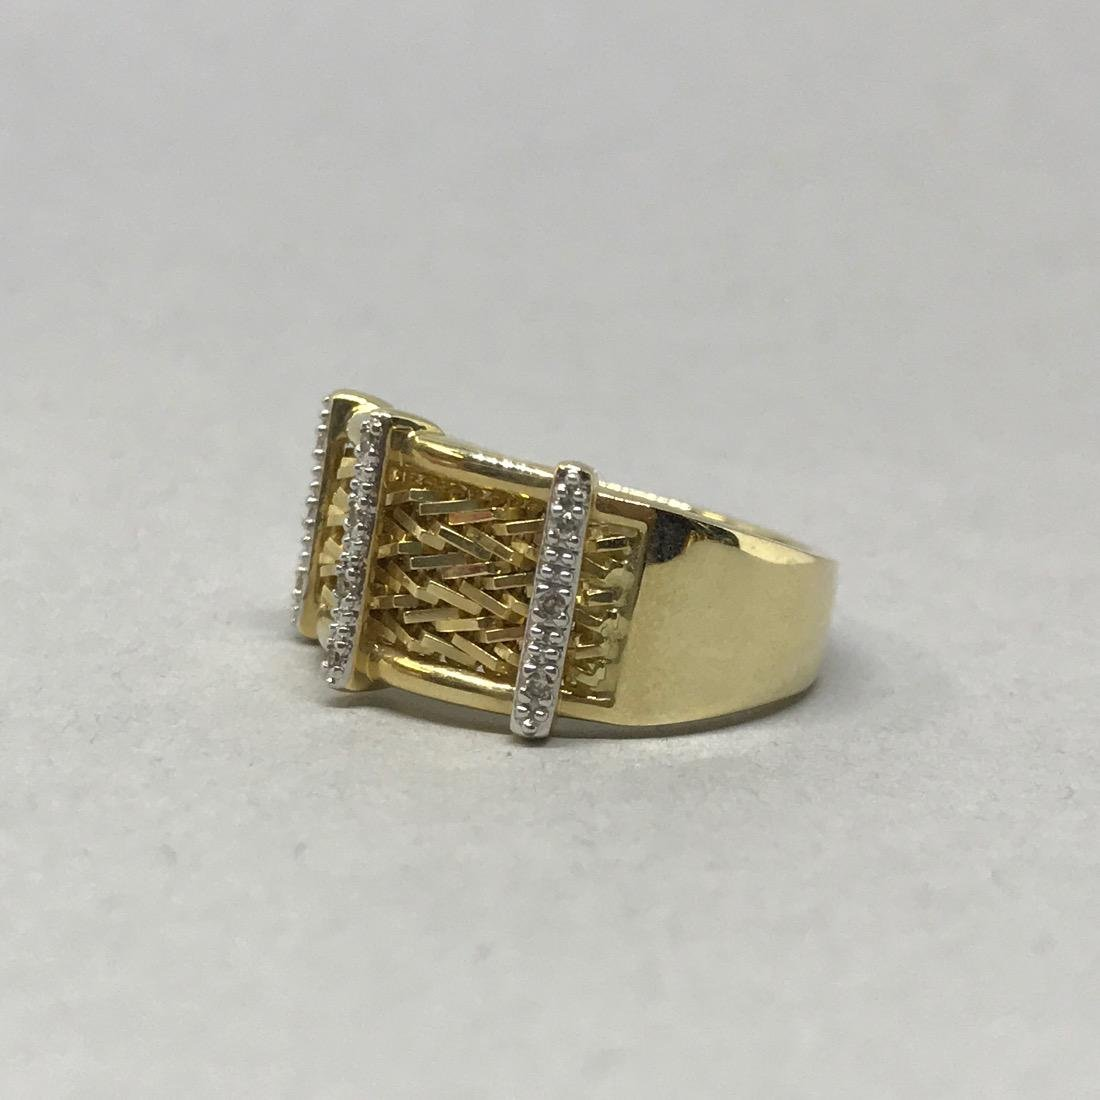 14 Kt Gold Ring with Diamonds - 2